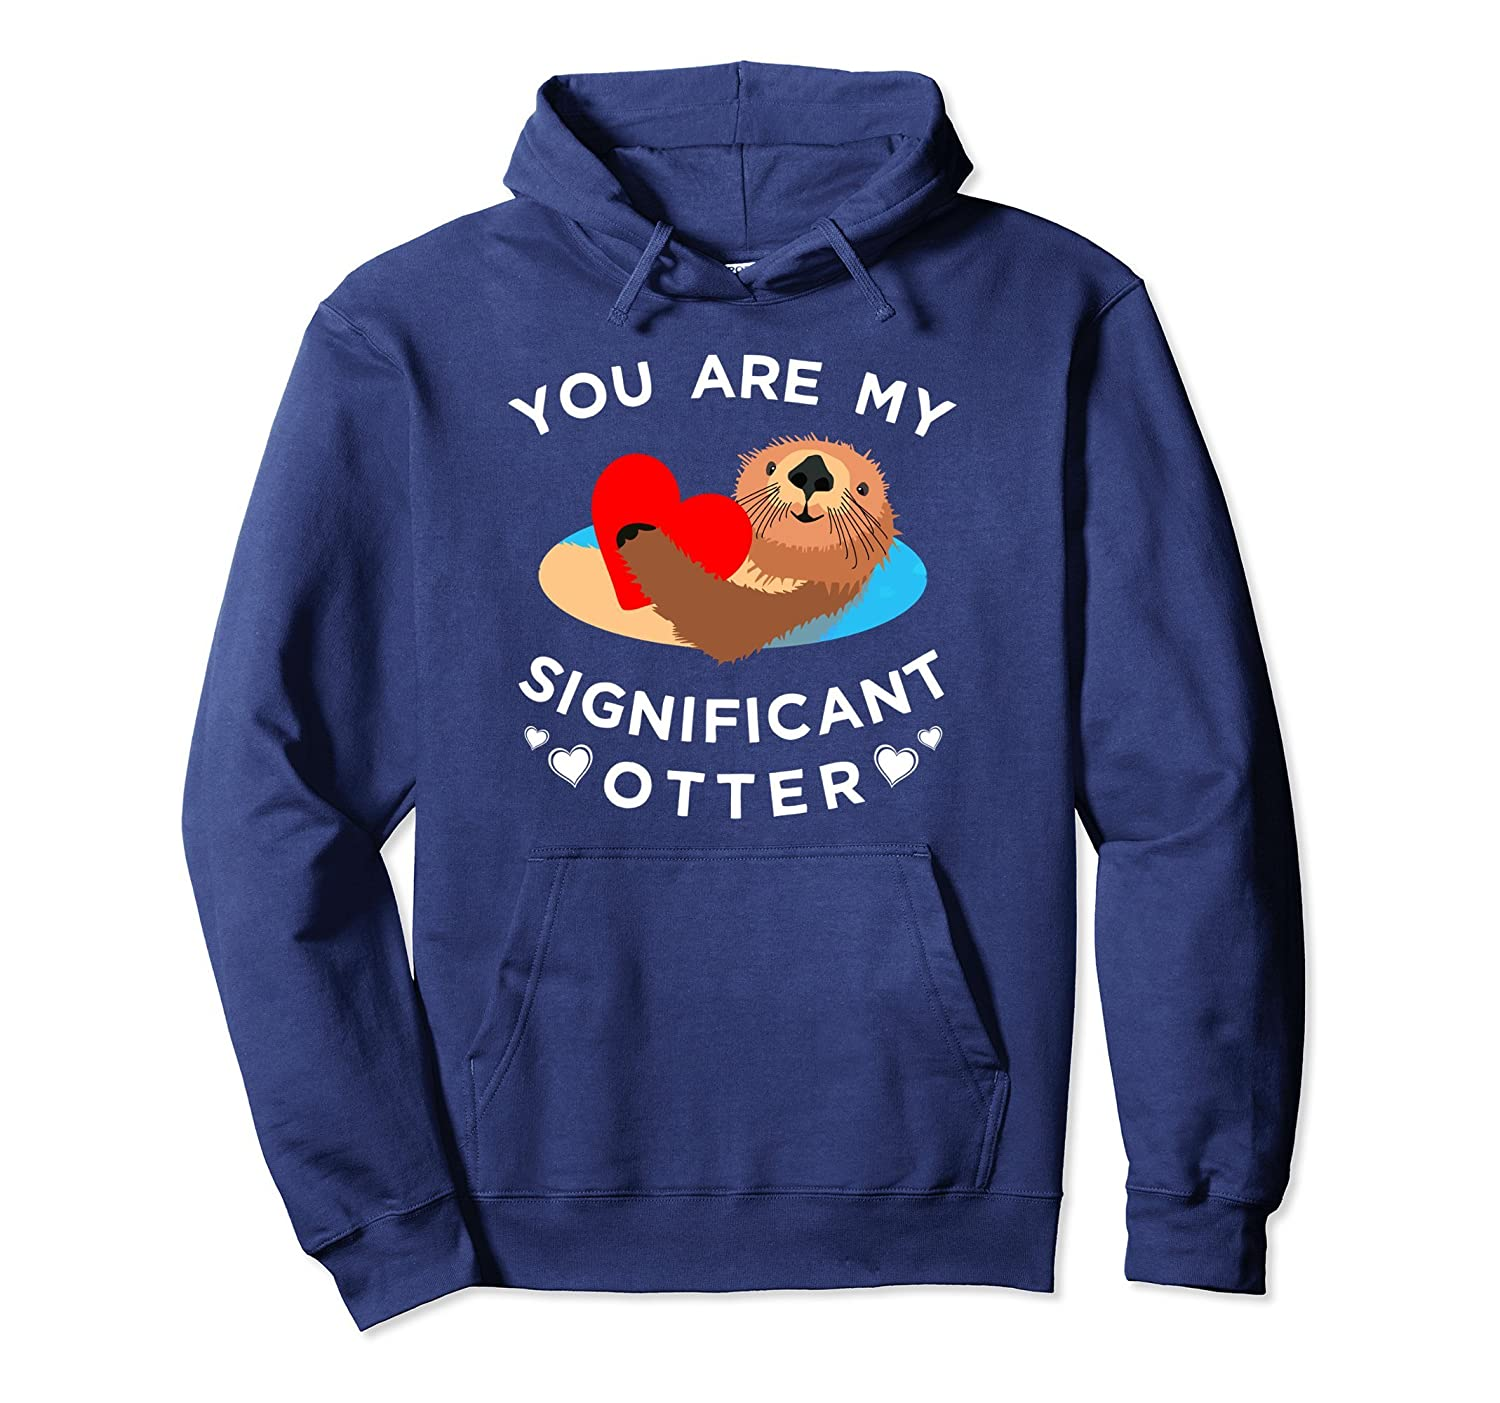 Youre My Significant Otter Cute Romantic Hoodie Pullover-ah my shirt one gift